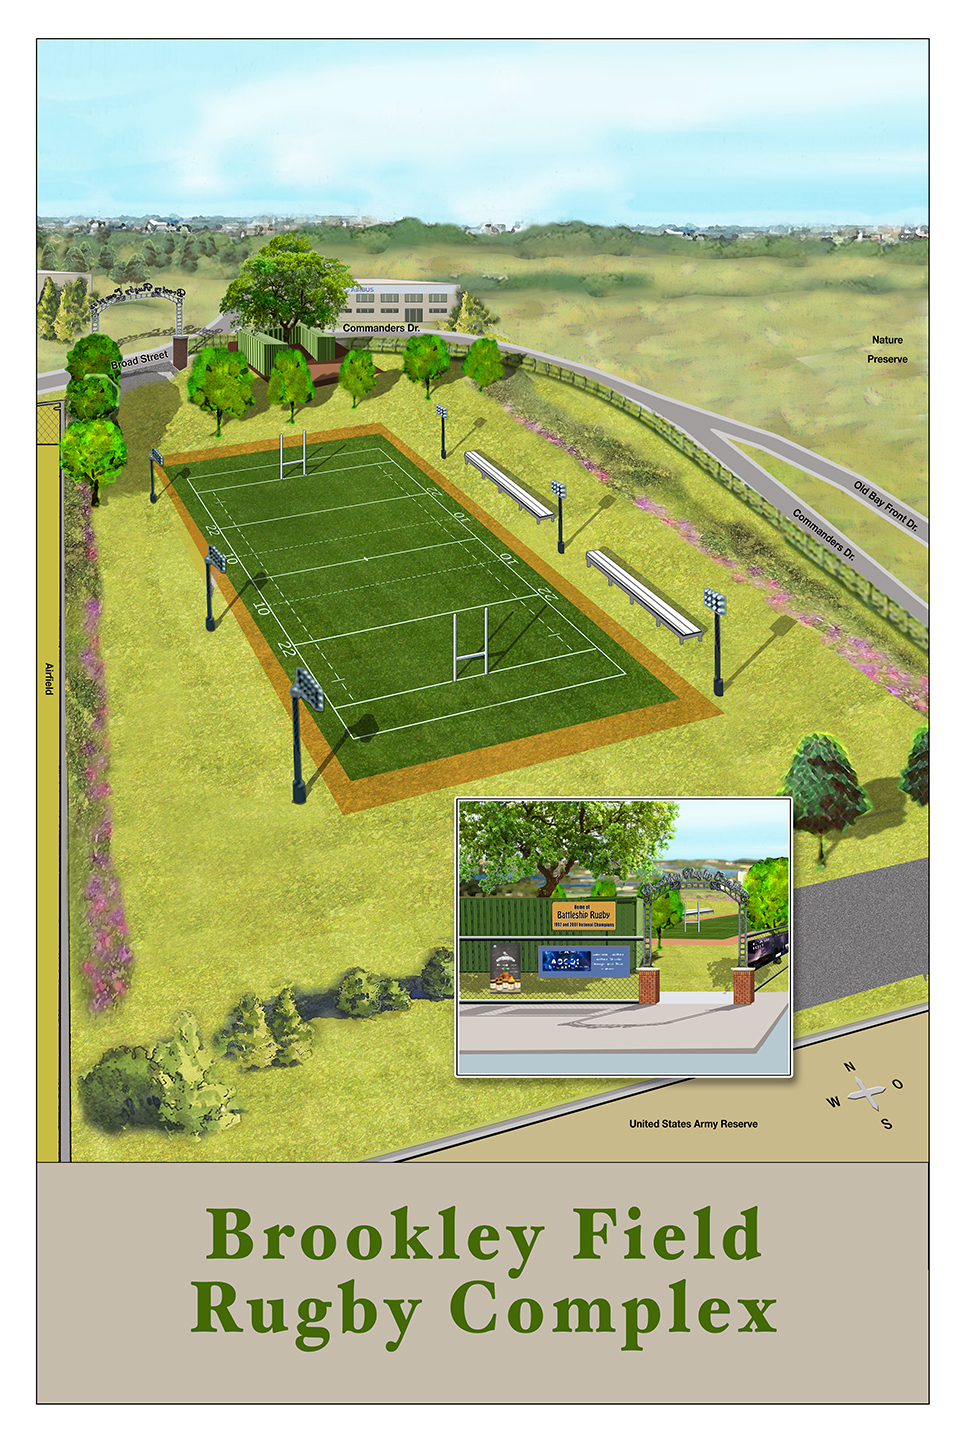 Rendition of the Brookley Field rugby complex